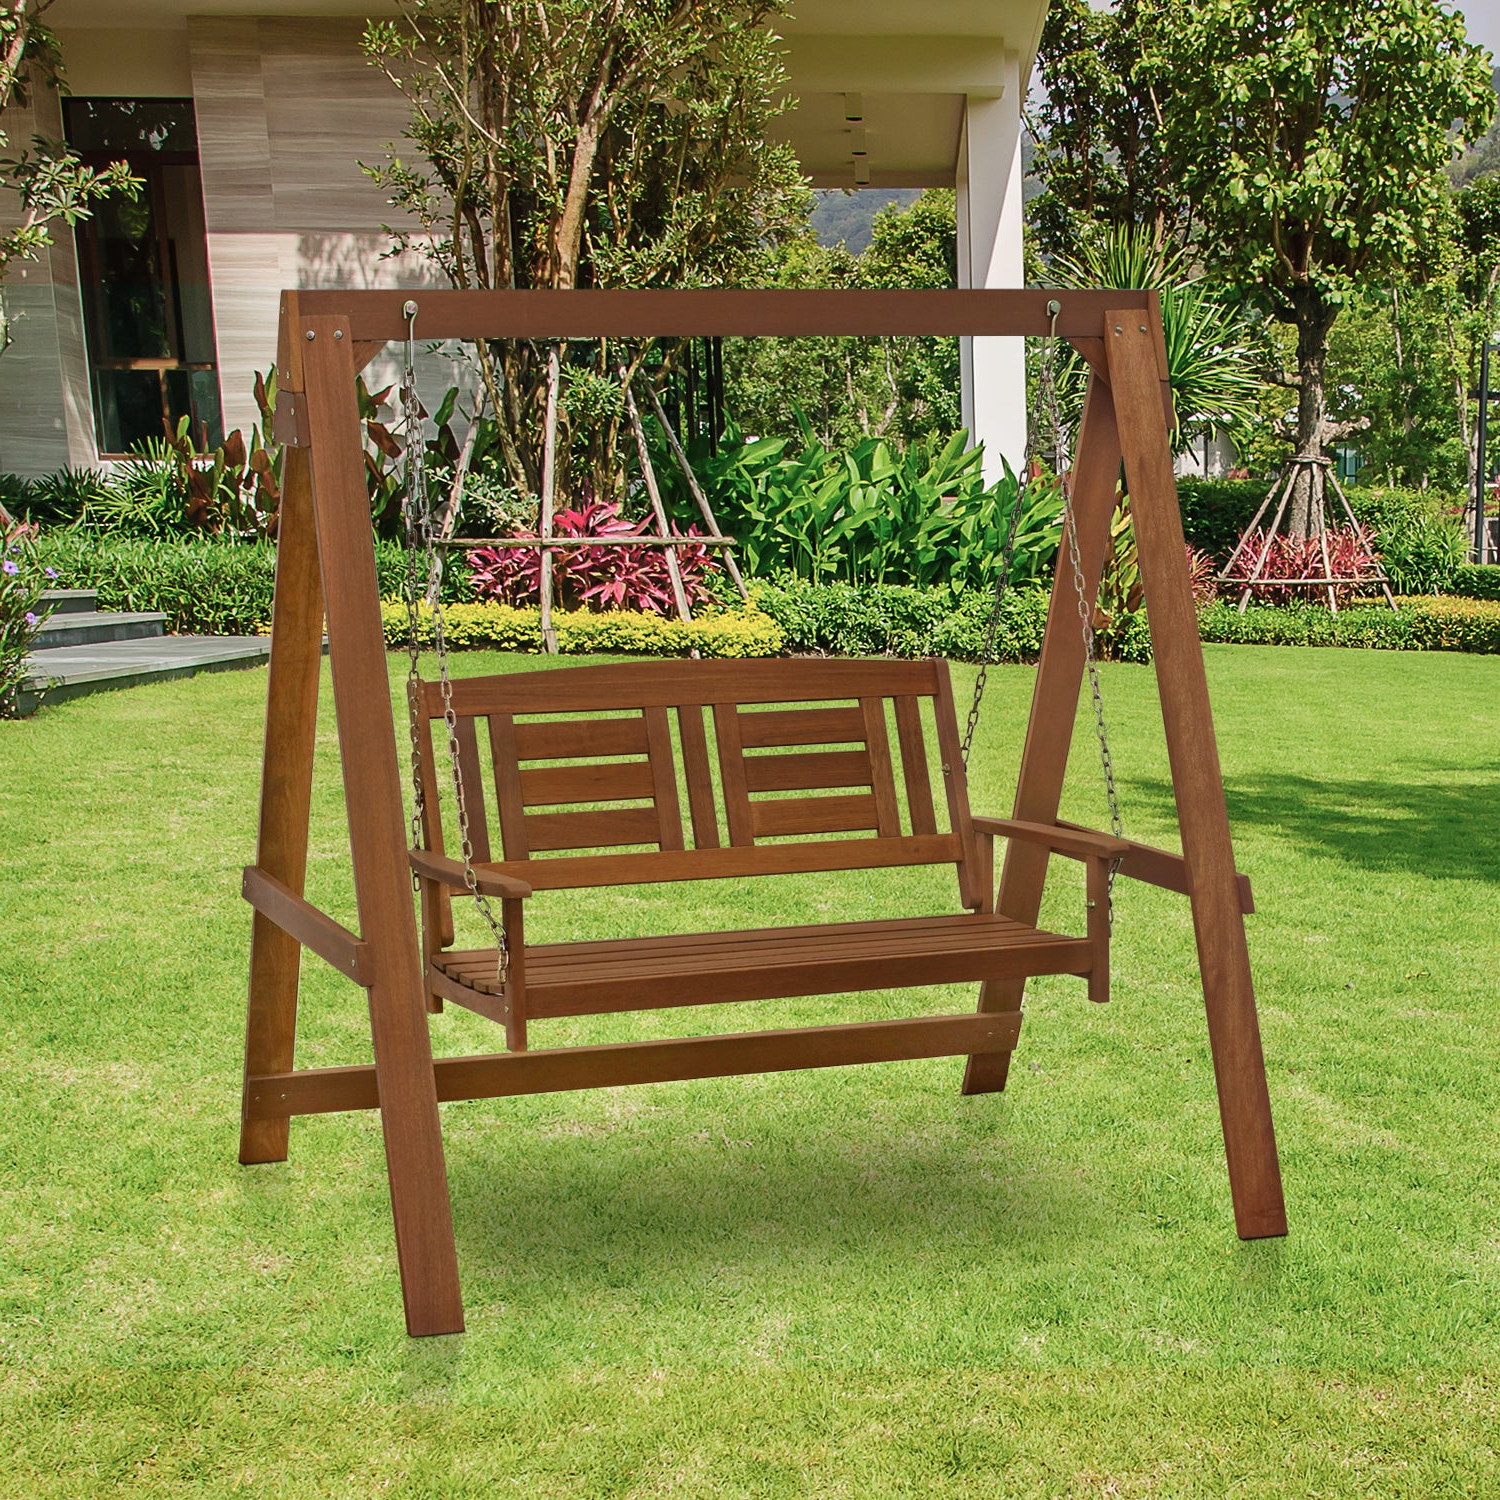 Newest Porch Swings With Stand With Regard To Furinno Tioman Hardwood Hanging Porch Swing With Stand In Teak Oil, Fg16409 (Gallery 10 of 25)